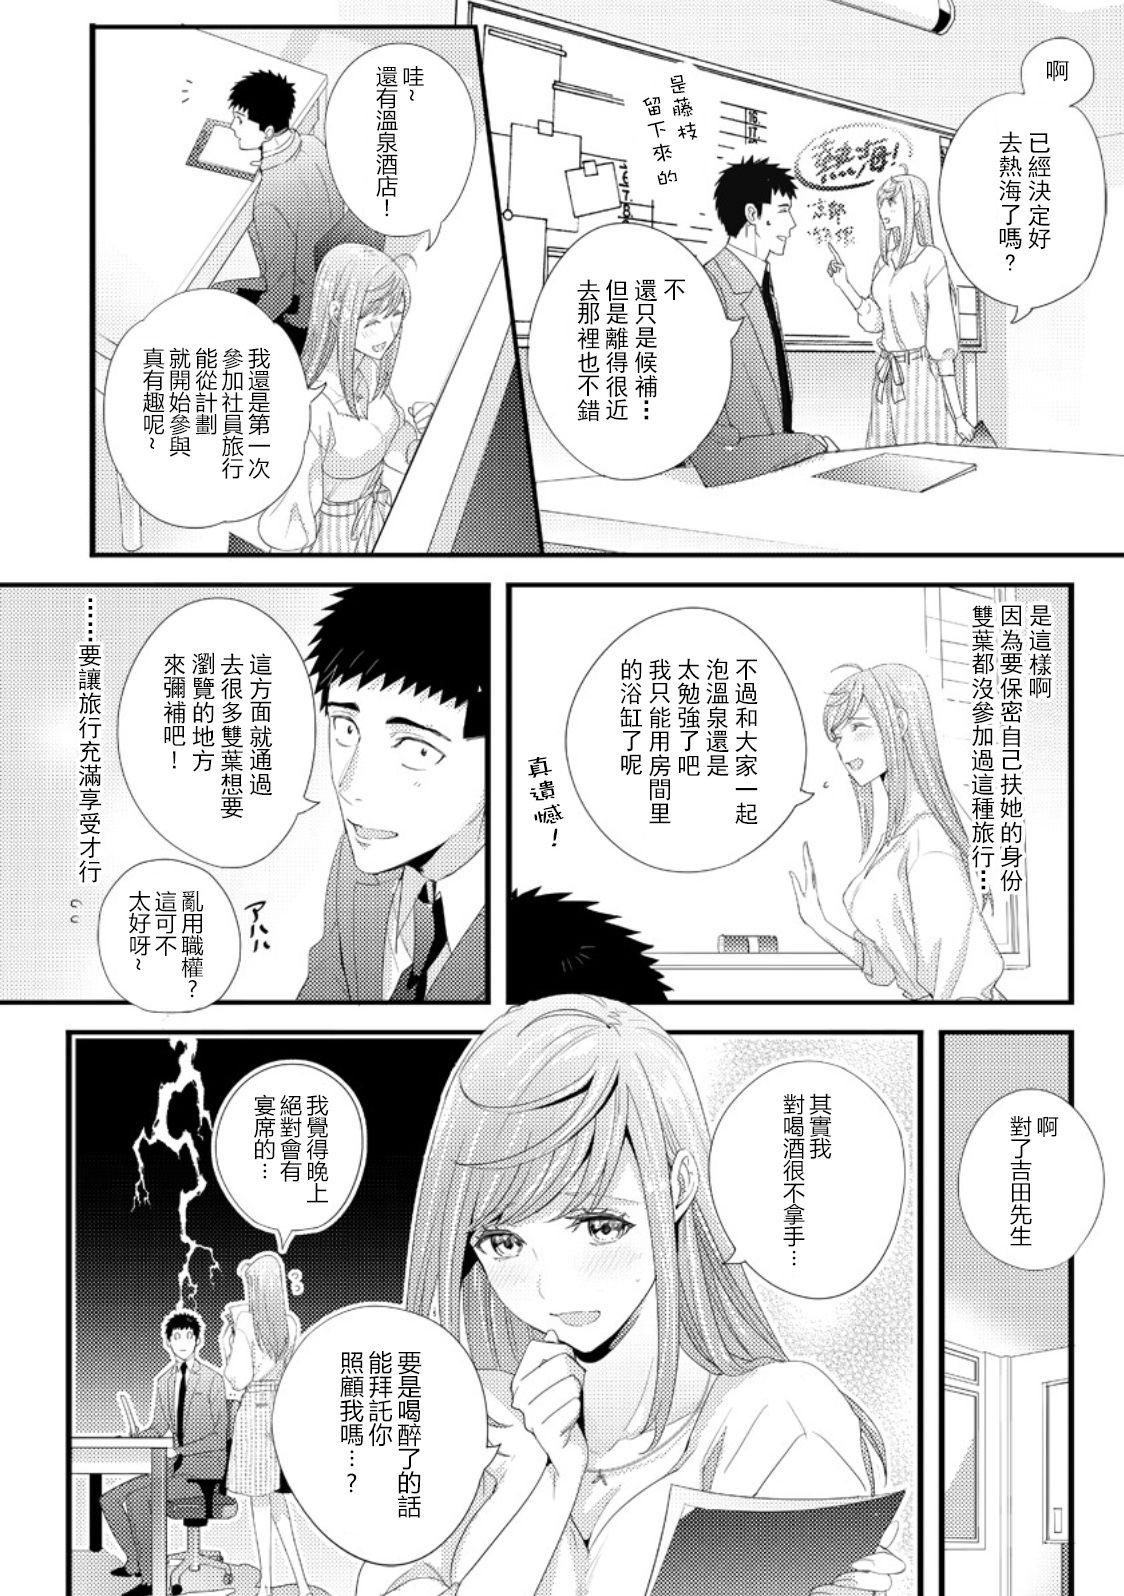 Please Let Me Hold You Futaba-San! Ch.1 5